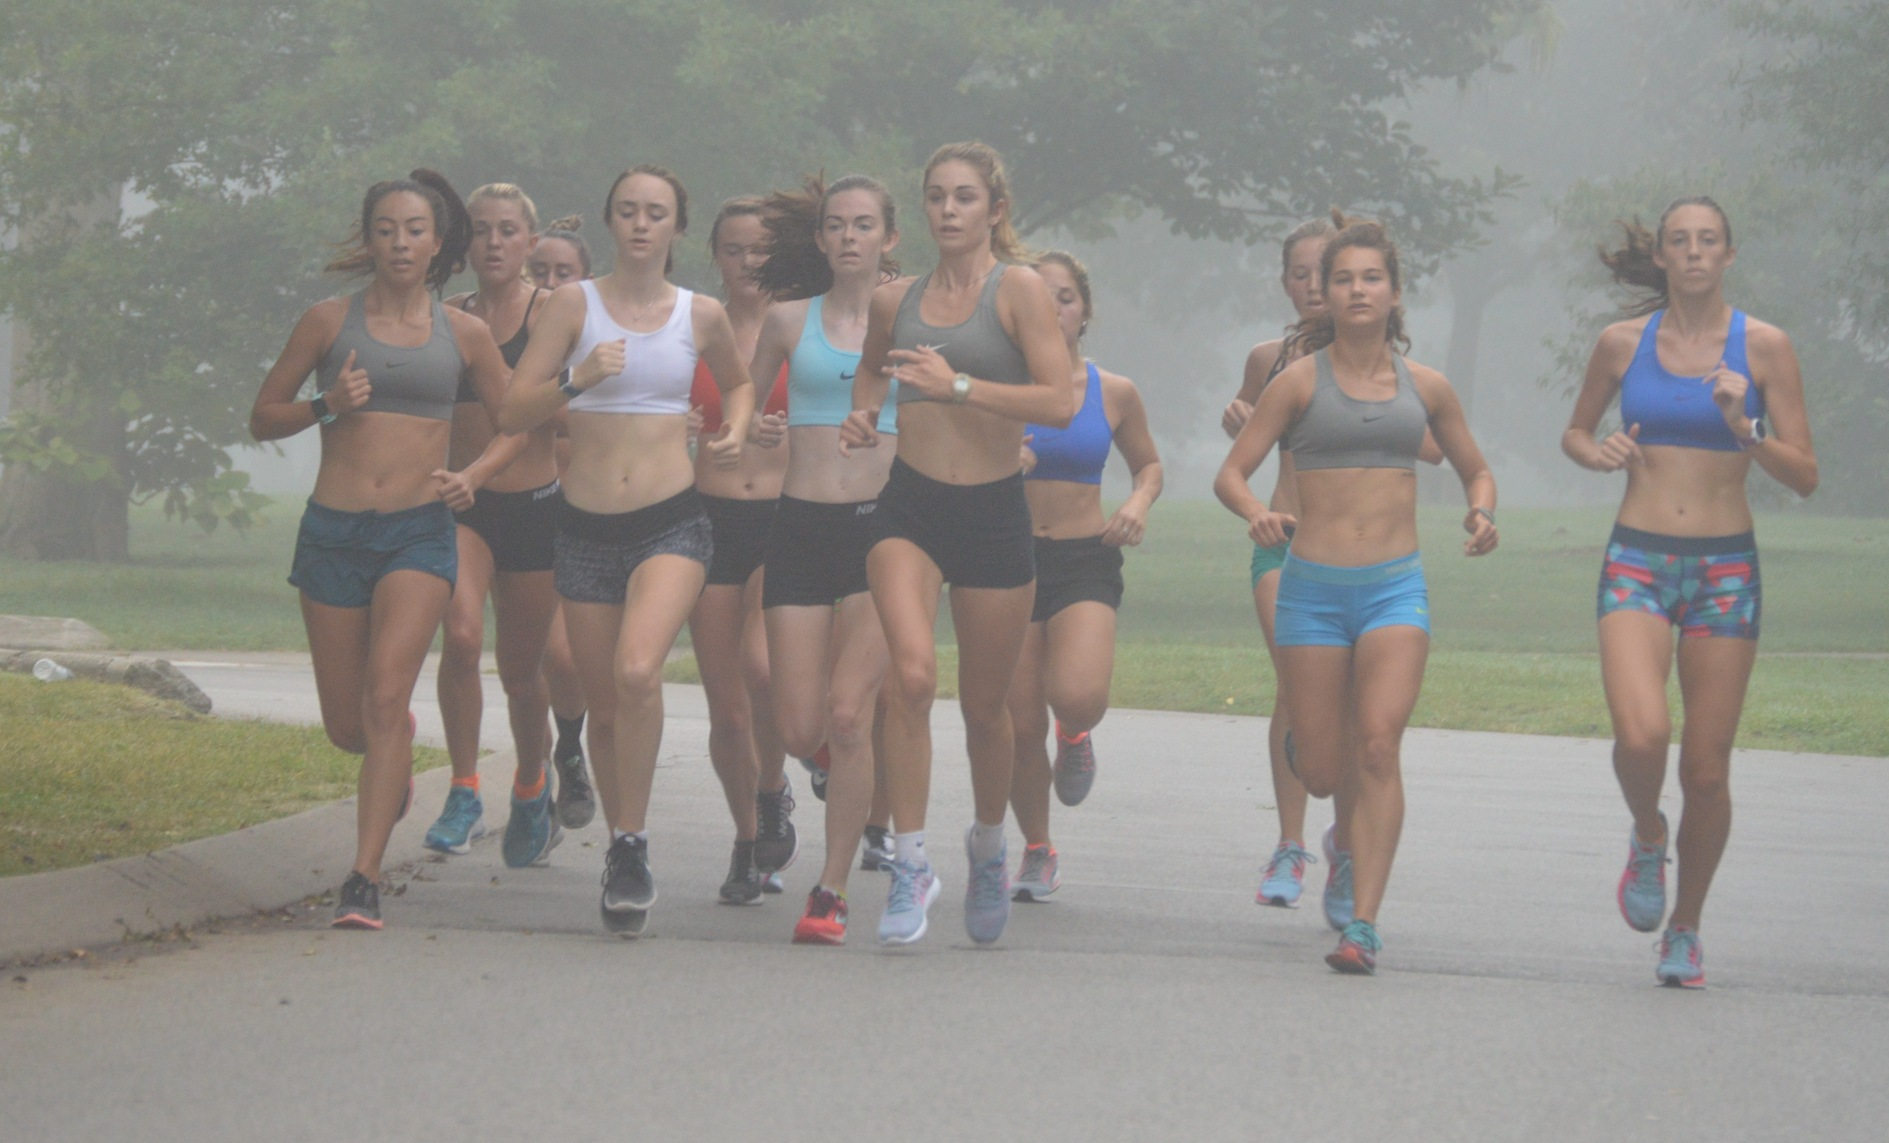 The Belmont women's cross country team runs through the early morning fog at Centennial Park during a preseason training session in August.